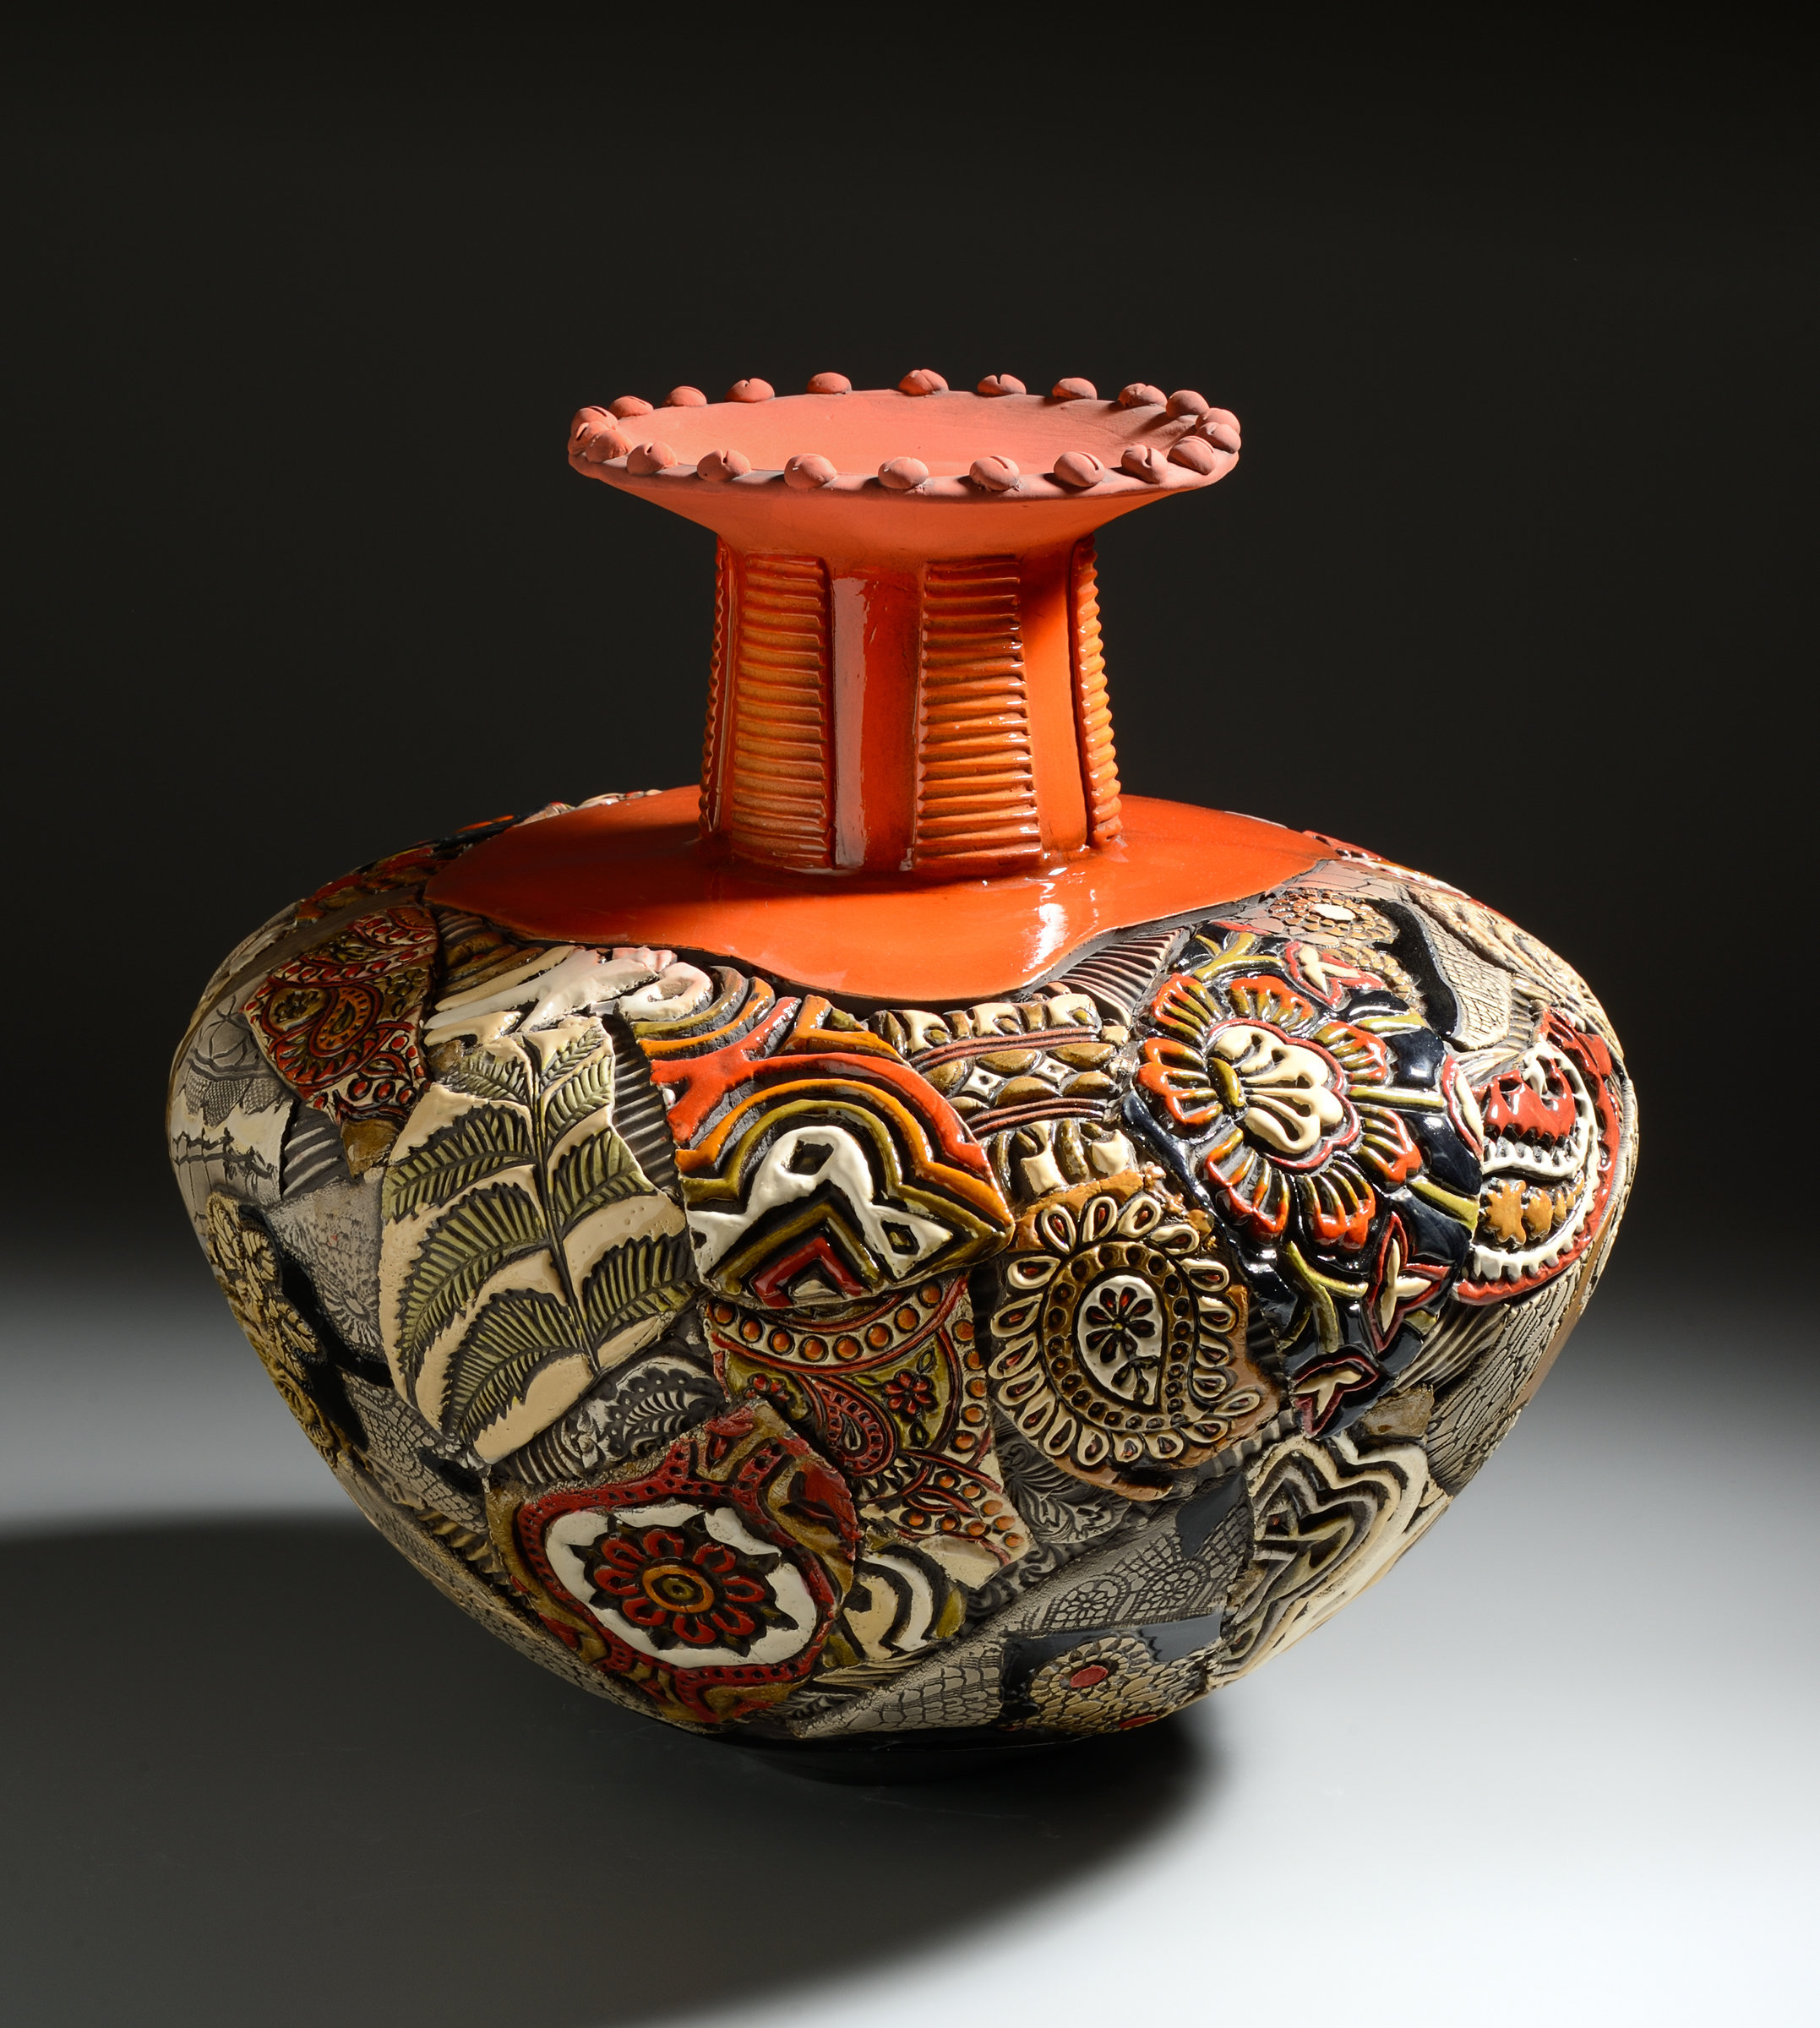 Extra Large Fluted Vessel In Oranges By Gail Markiewicz